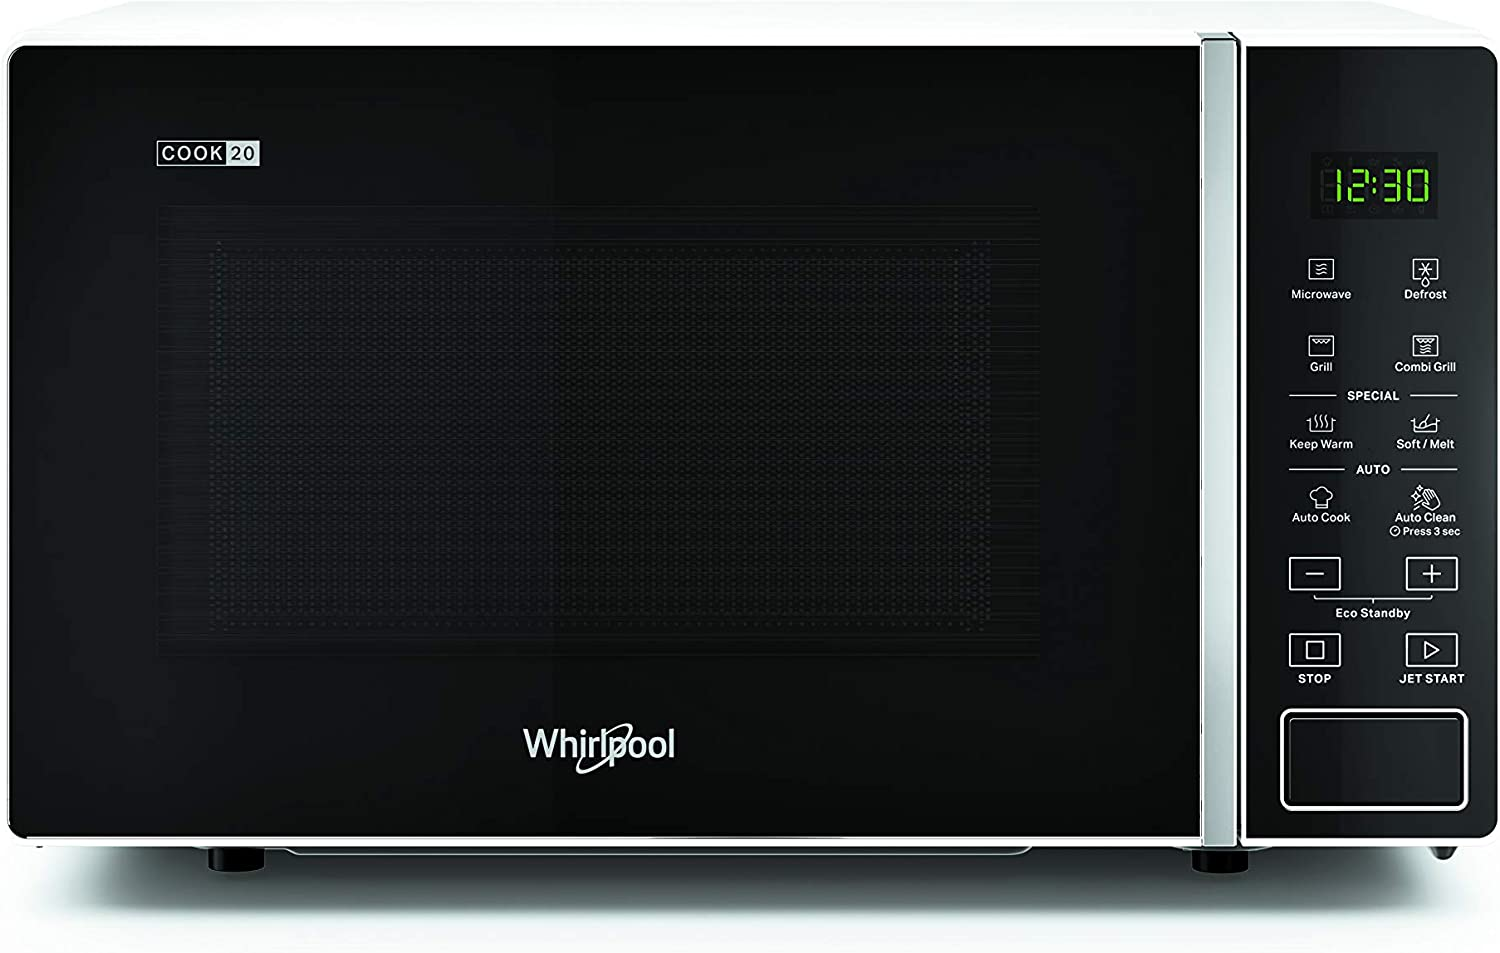 Whirlpool MWP 203 W - Horno microondas 20 litros blanco con grill